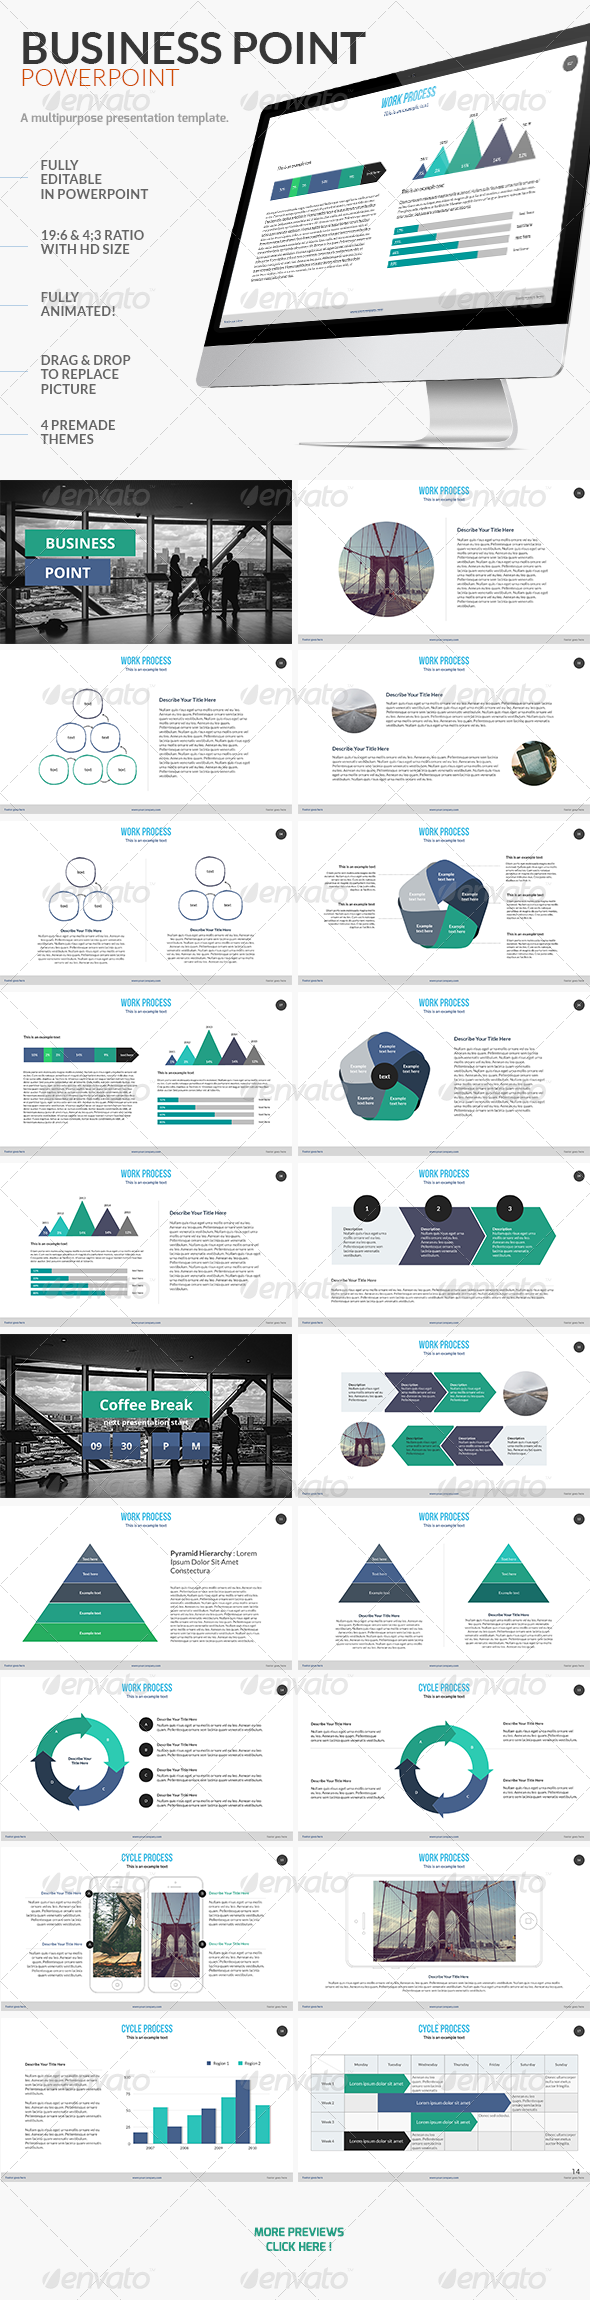 Business Point - Powerpoint Template